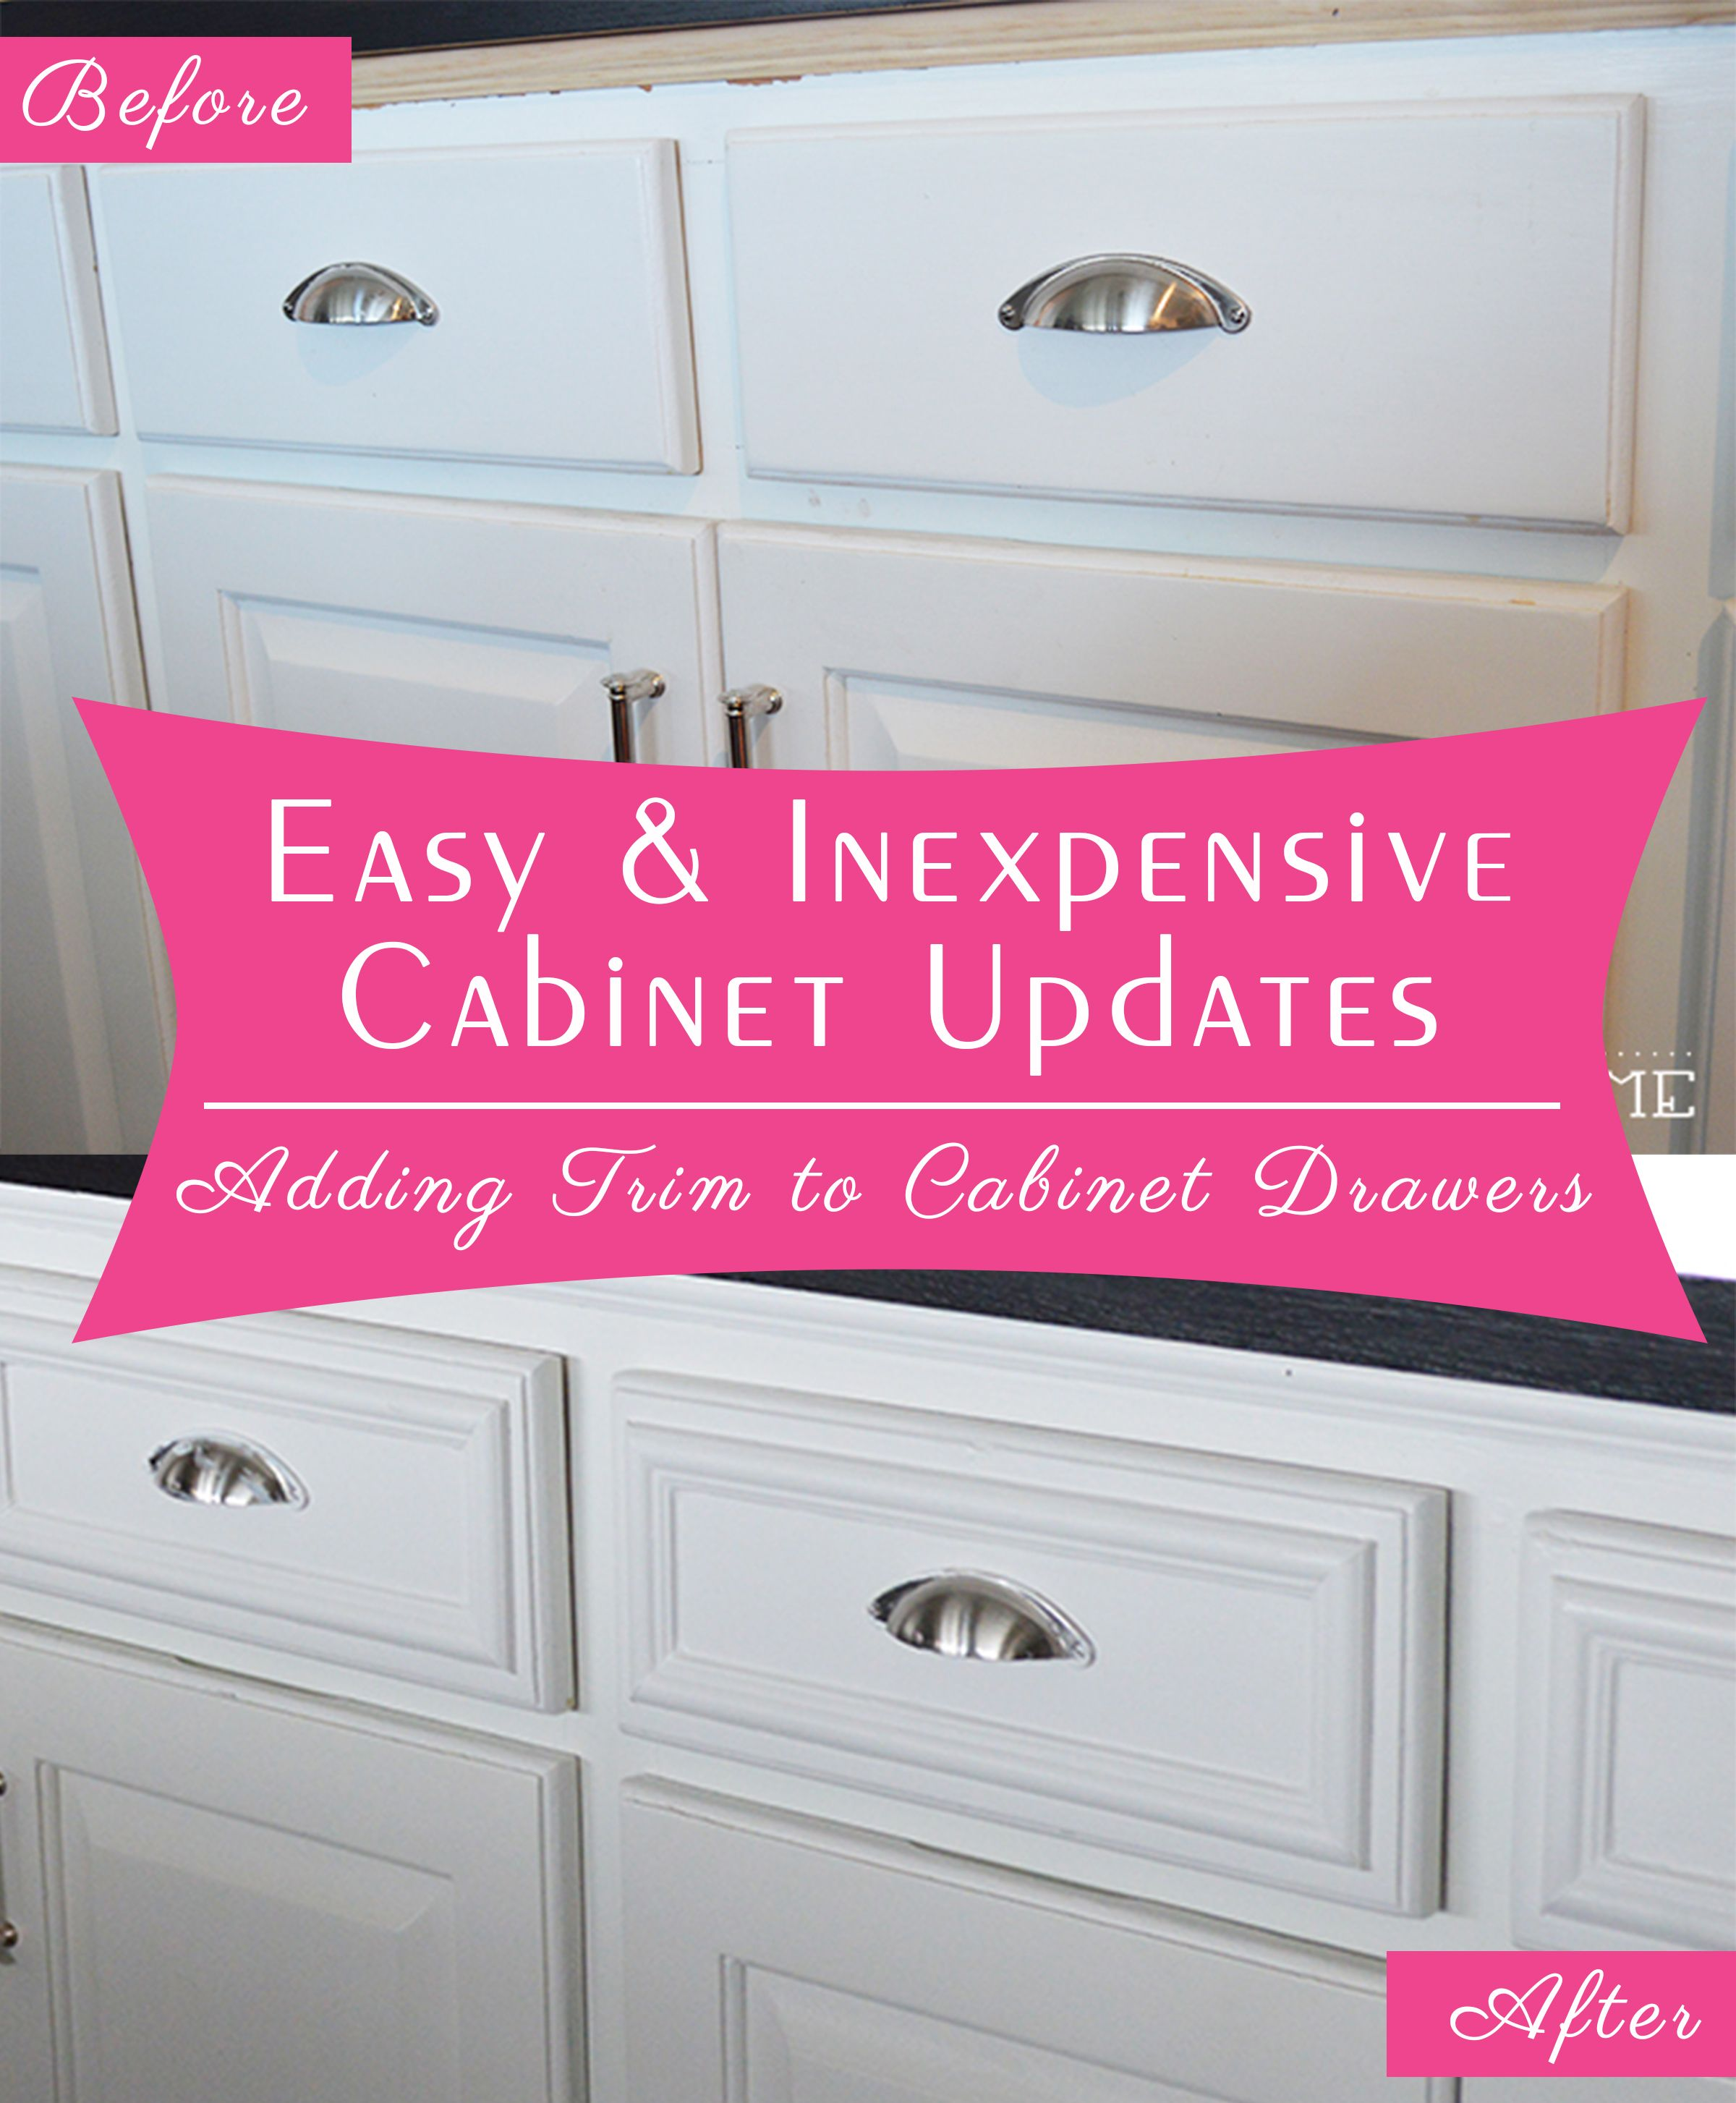 Easy and Inexpensive Cabinet Updates: How to add trim to cabinet drawers (kitchen drawers)